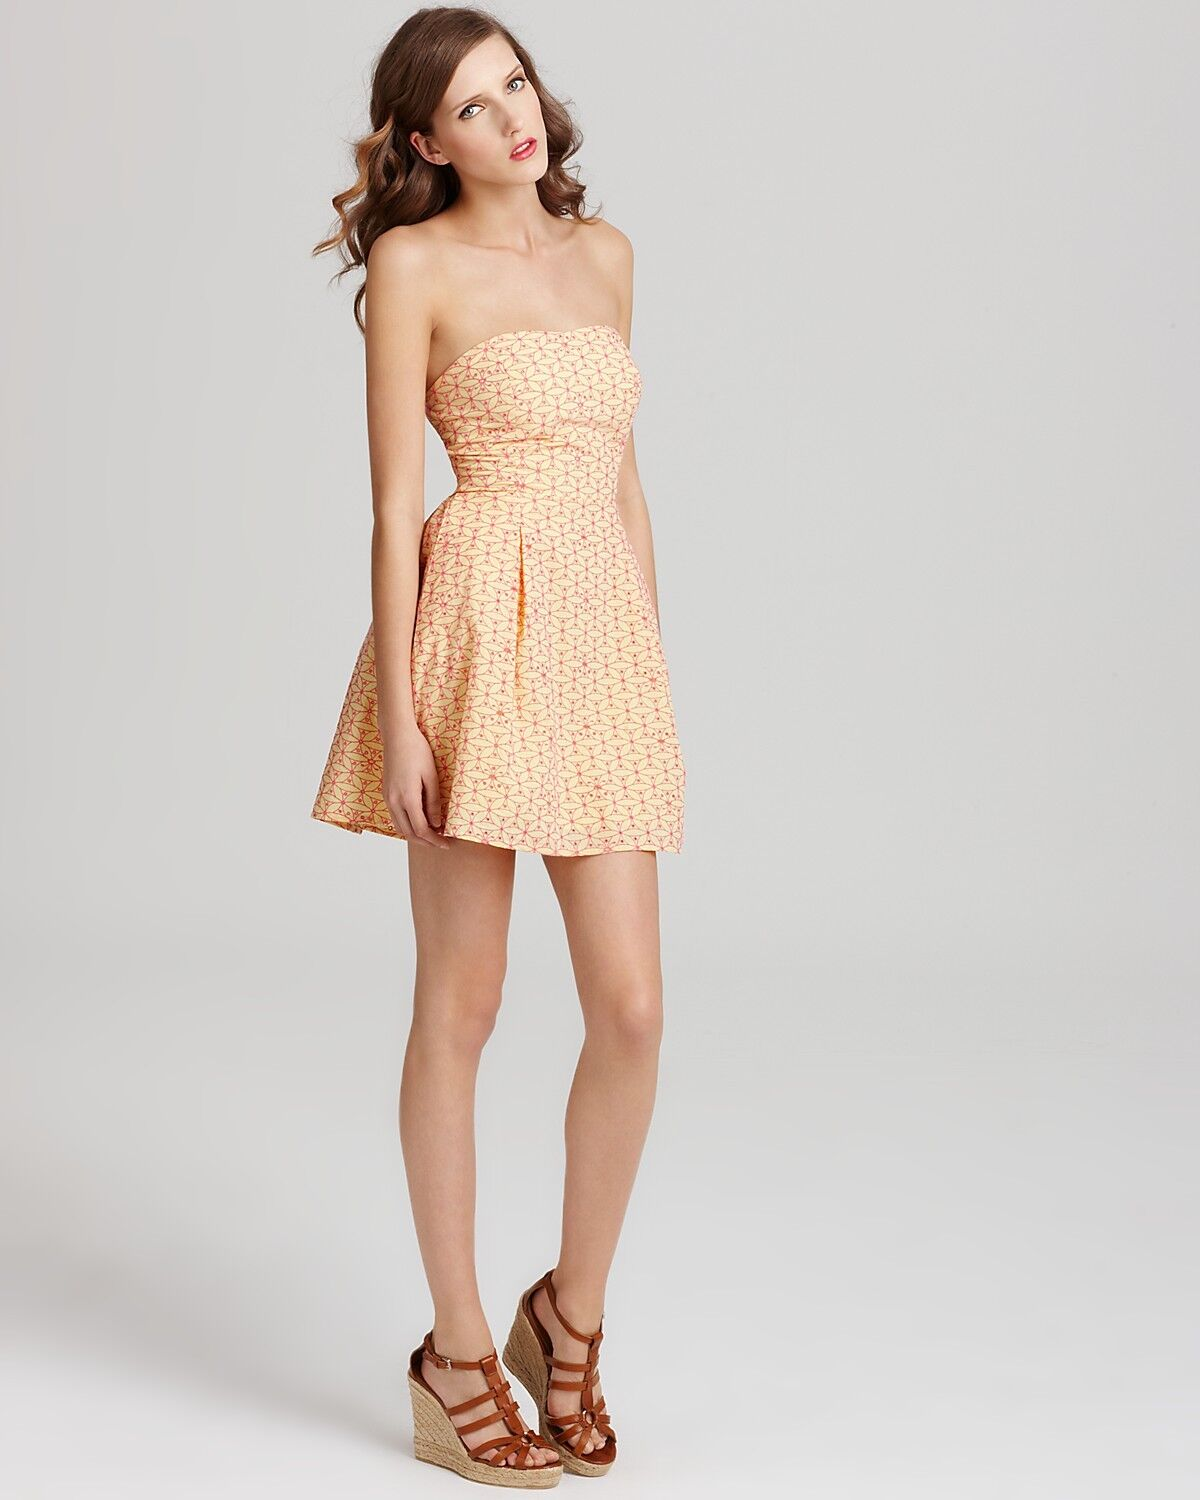 Lilly Pulitzer Felicity Starfruit Yellow Fly Away Embroidered Eyelet Dress